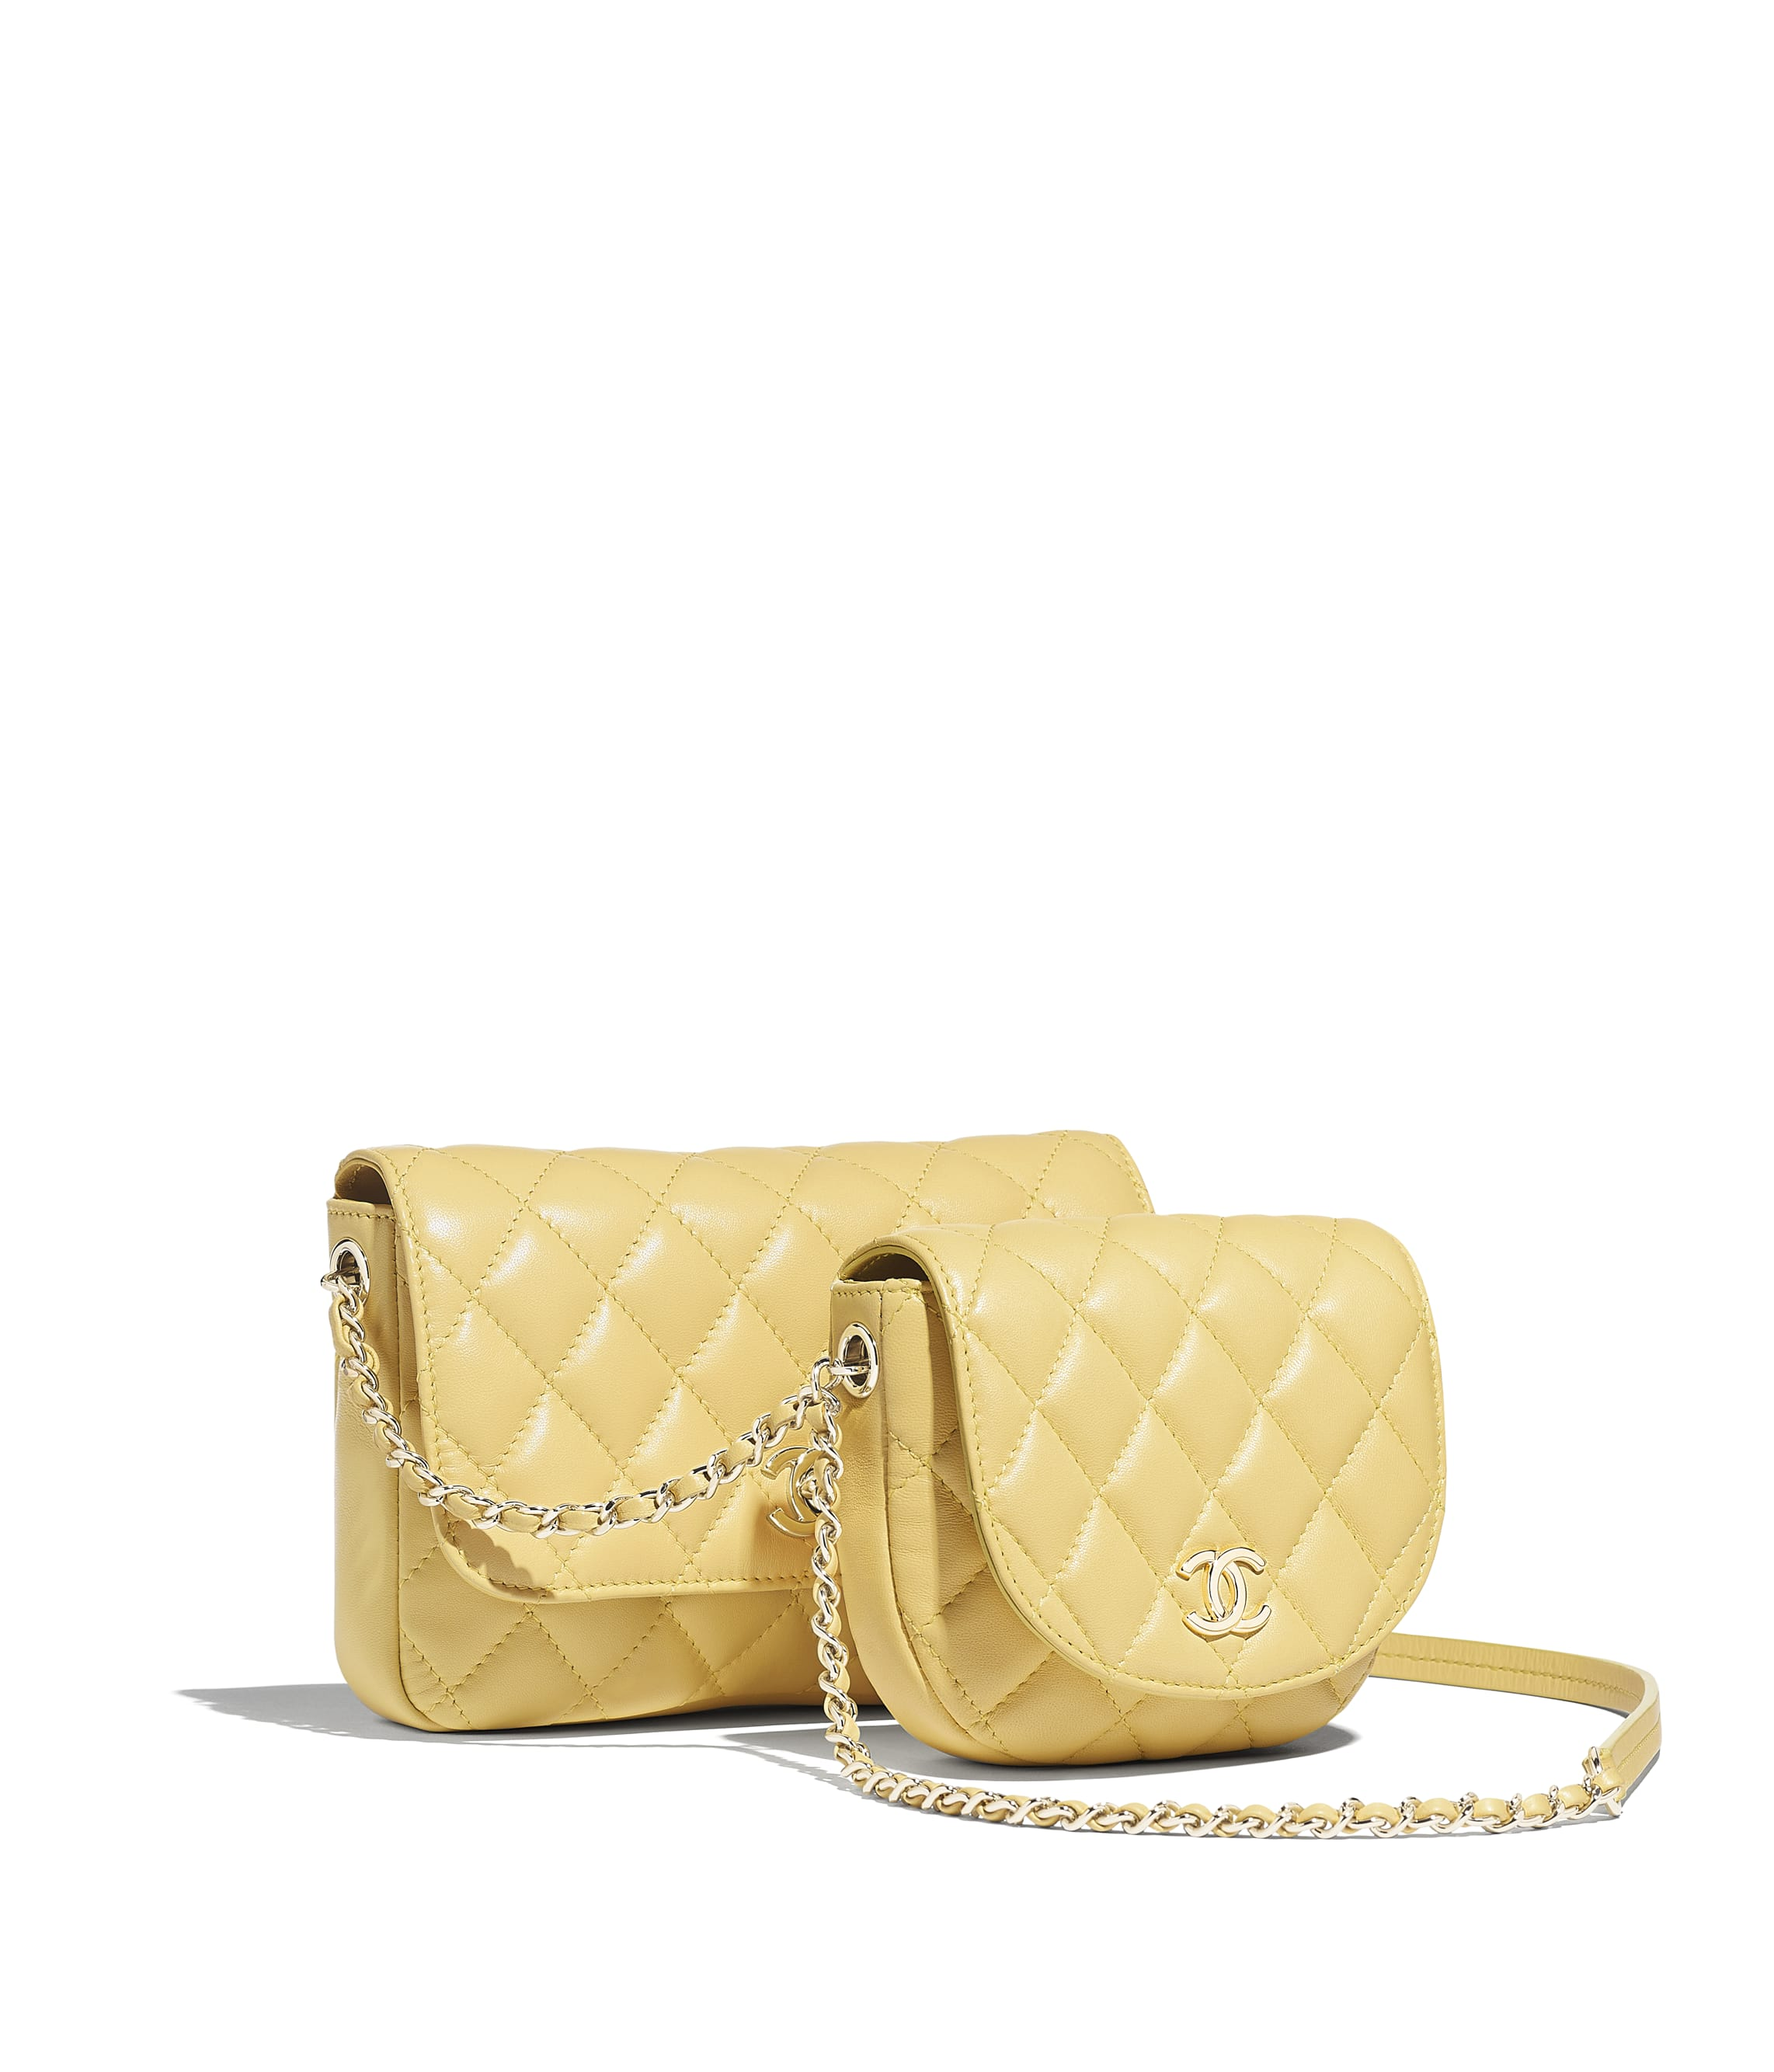 bd14ce0c1f3466 Handbags - CHANEL